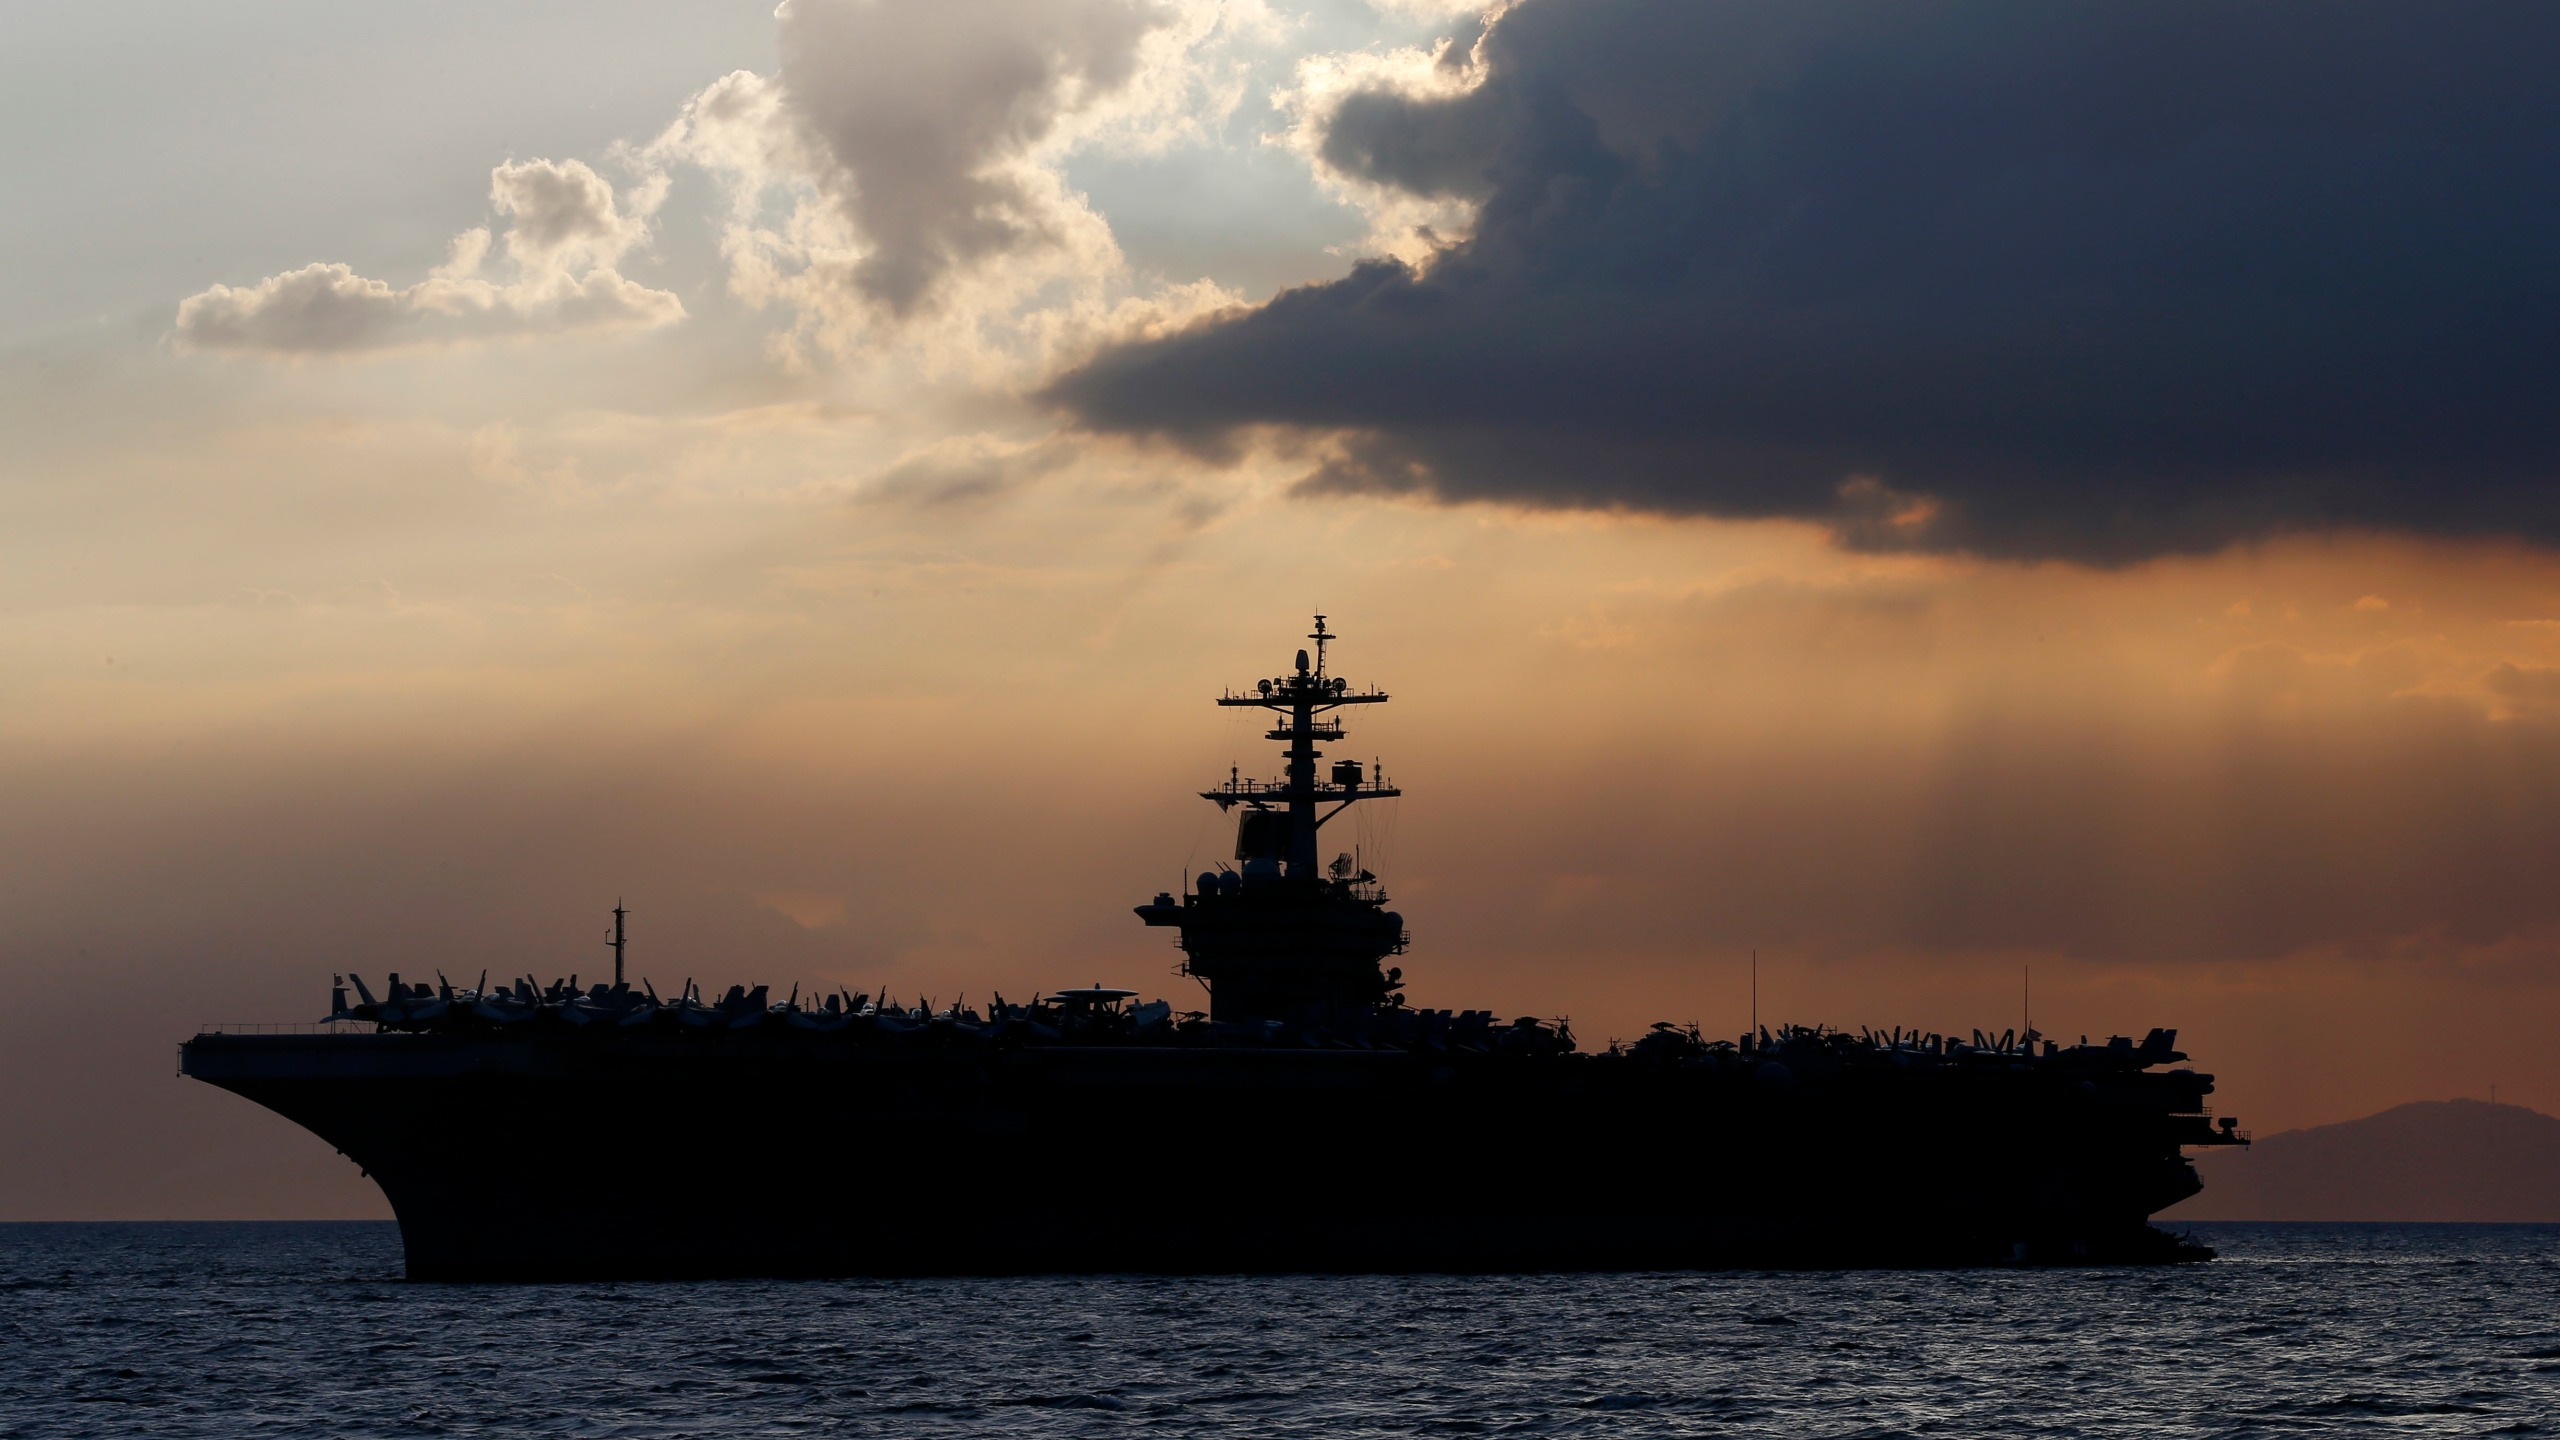 The USS Theodore Roosevelt aircraft carrier anchored off Manila Bay west of Manila, Philippines in 2018. (AP Photo/Bullit Marquez, File)